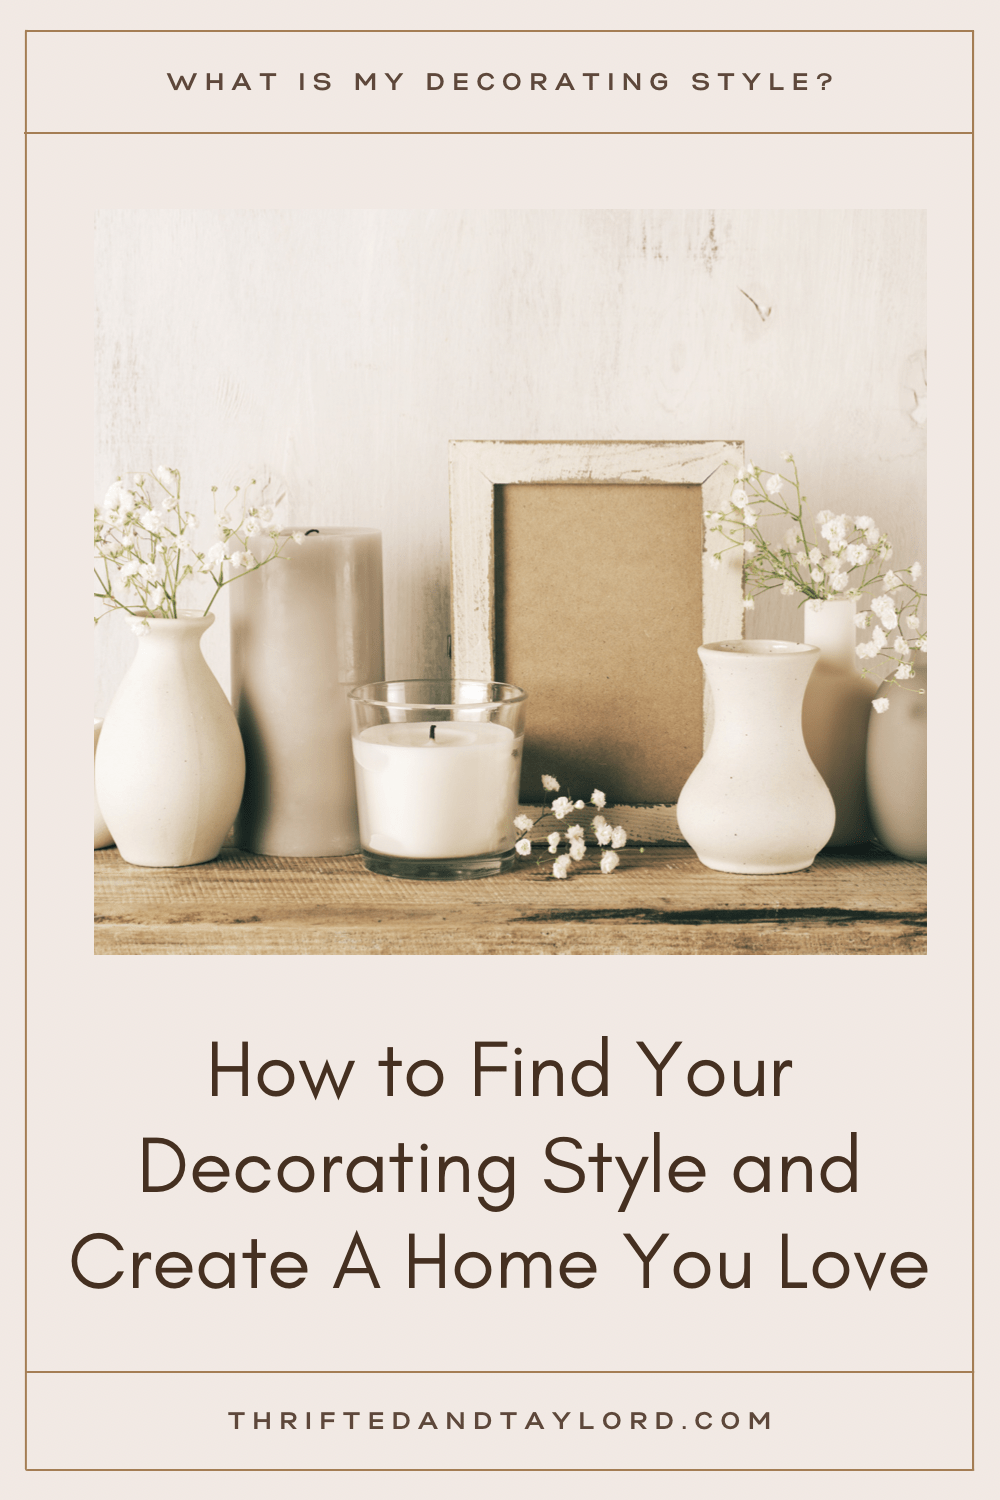 What Is My Decorating Style? | How To Find Out And Create A Home You Love